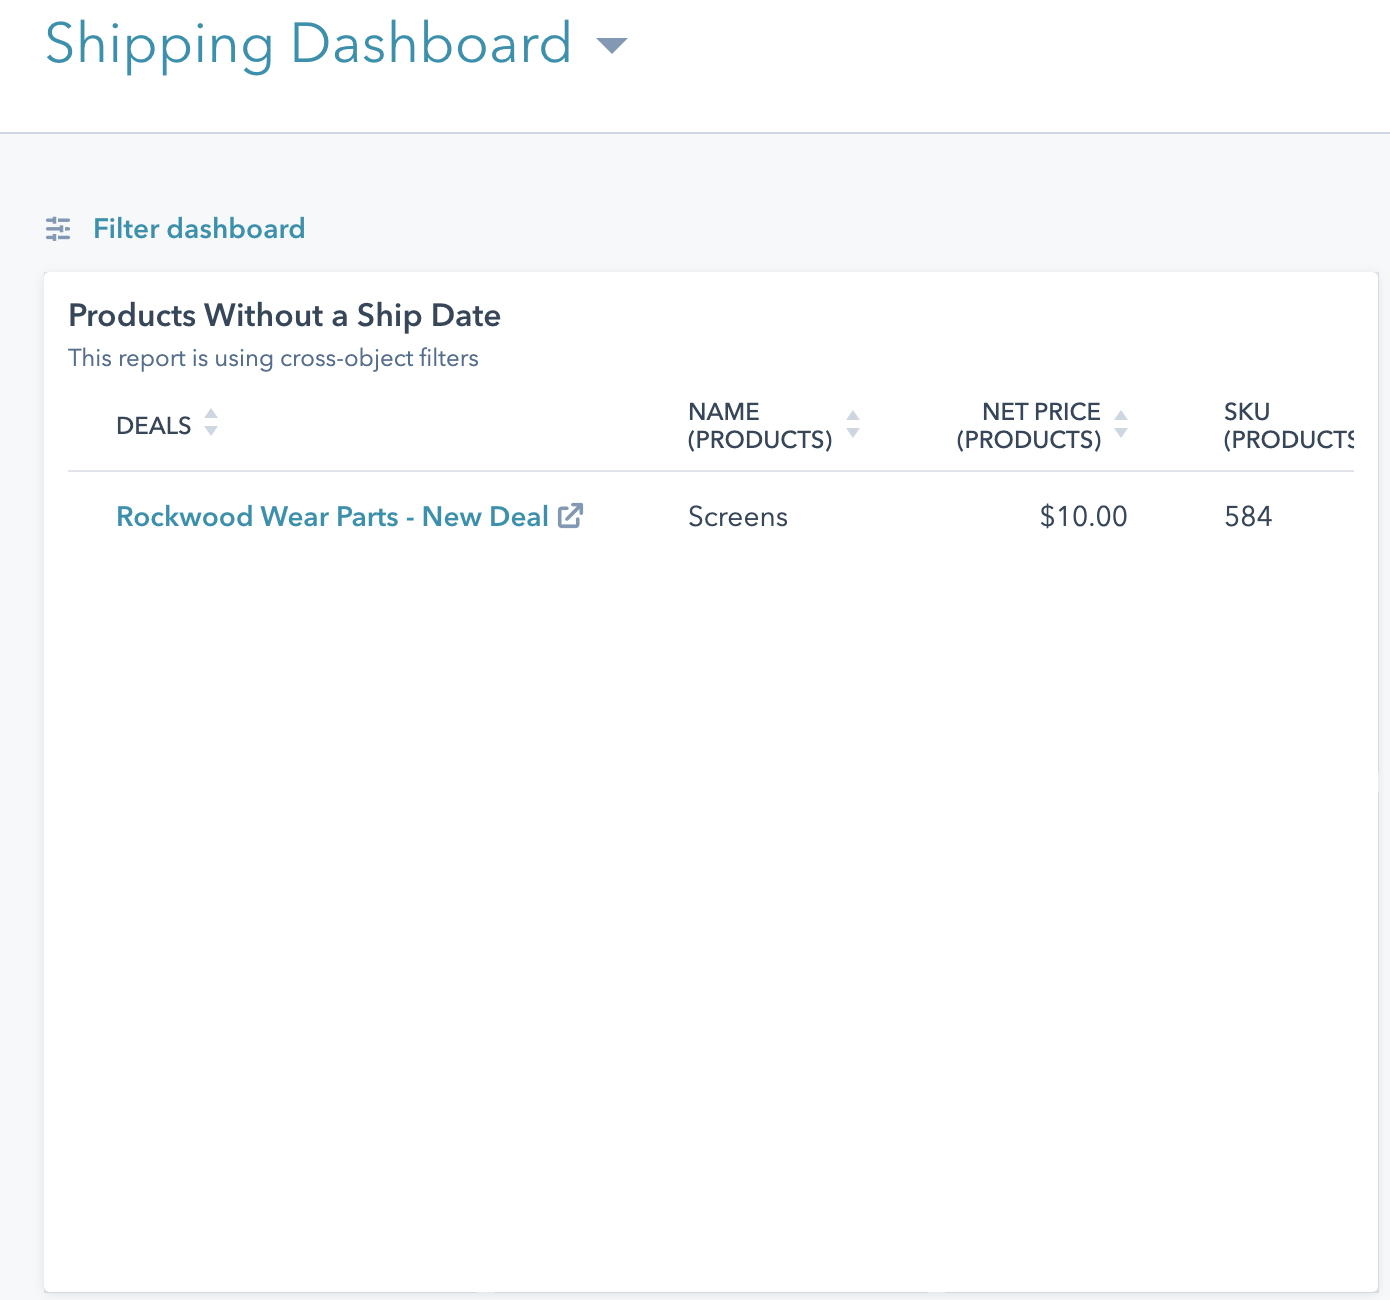 A view of the Shipping Dashboard, with a new deal featured